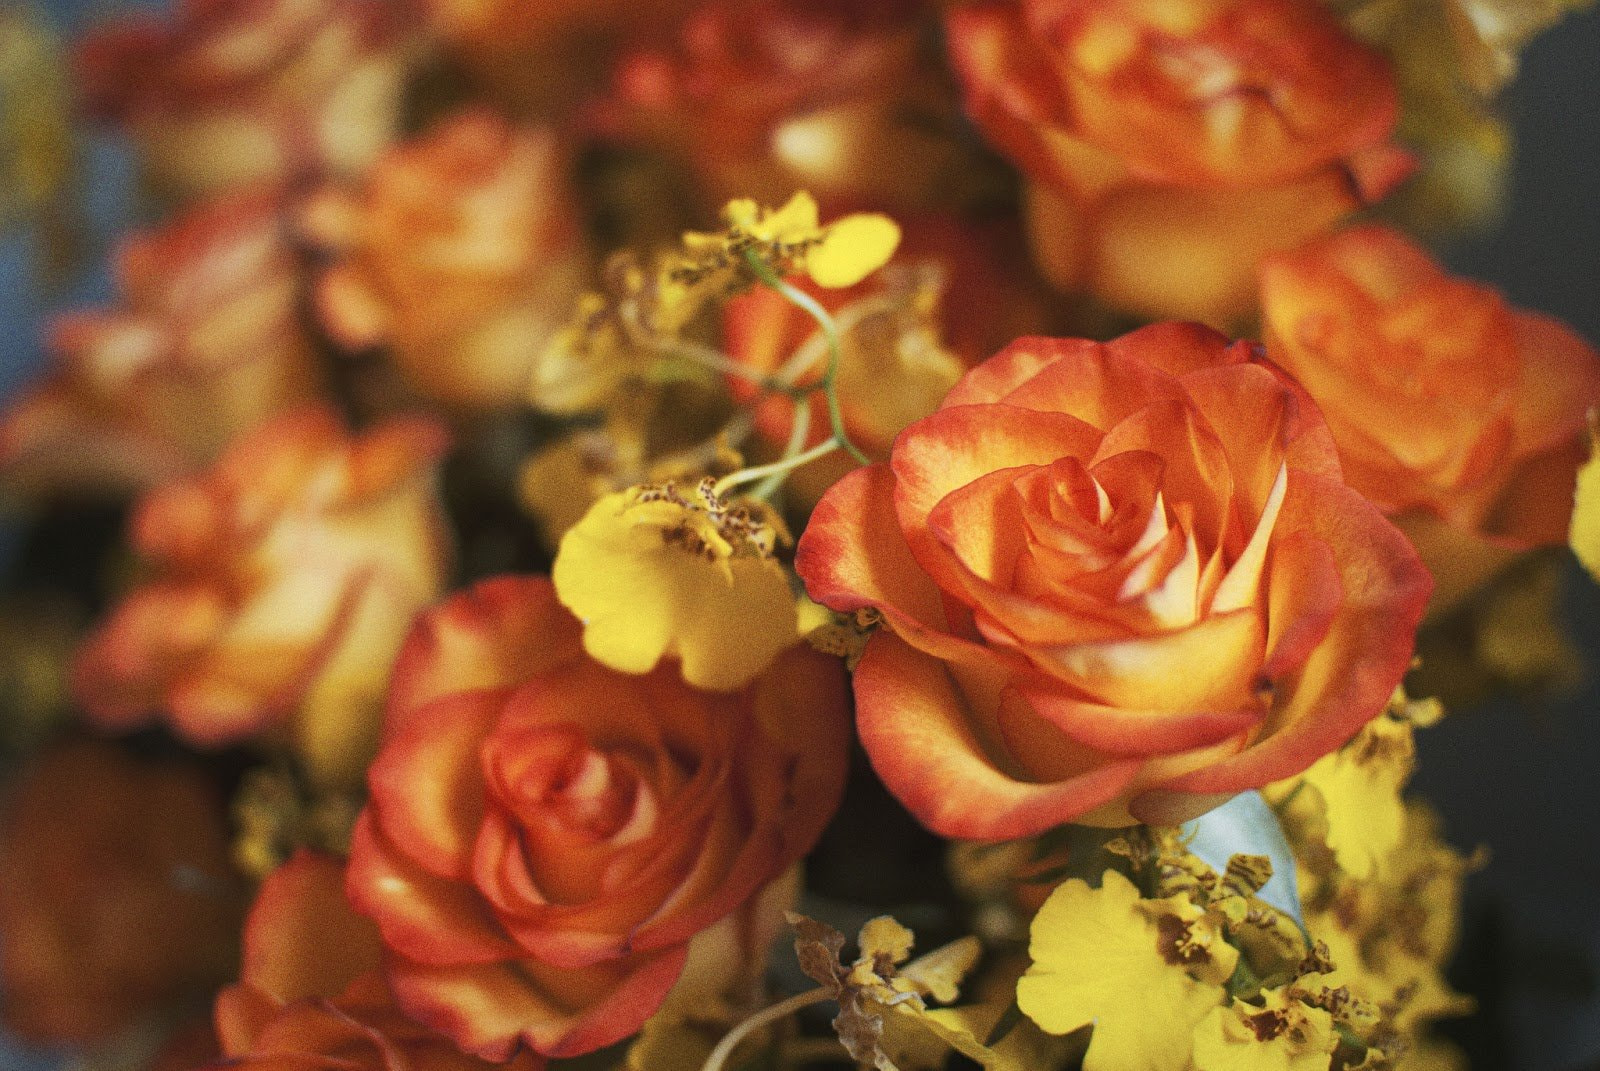 Orange and yellow roses by R.F. Pereira